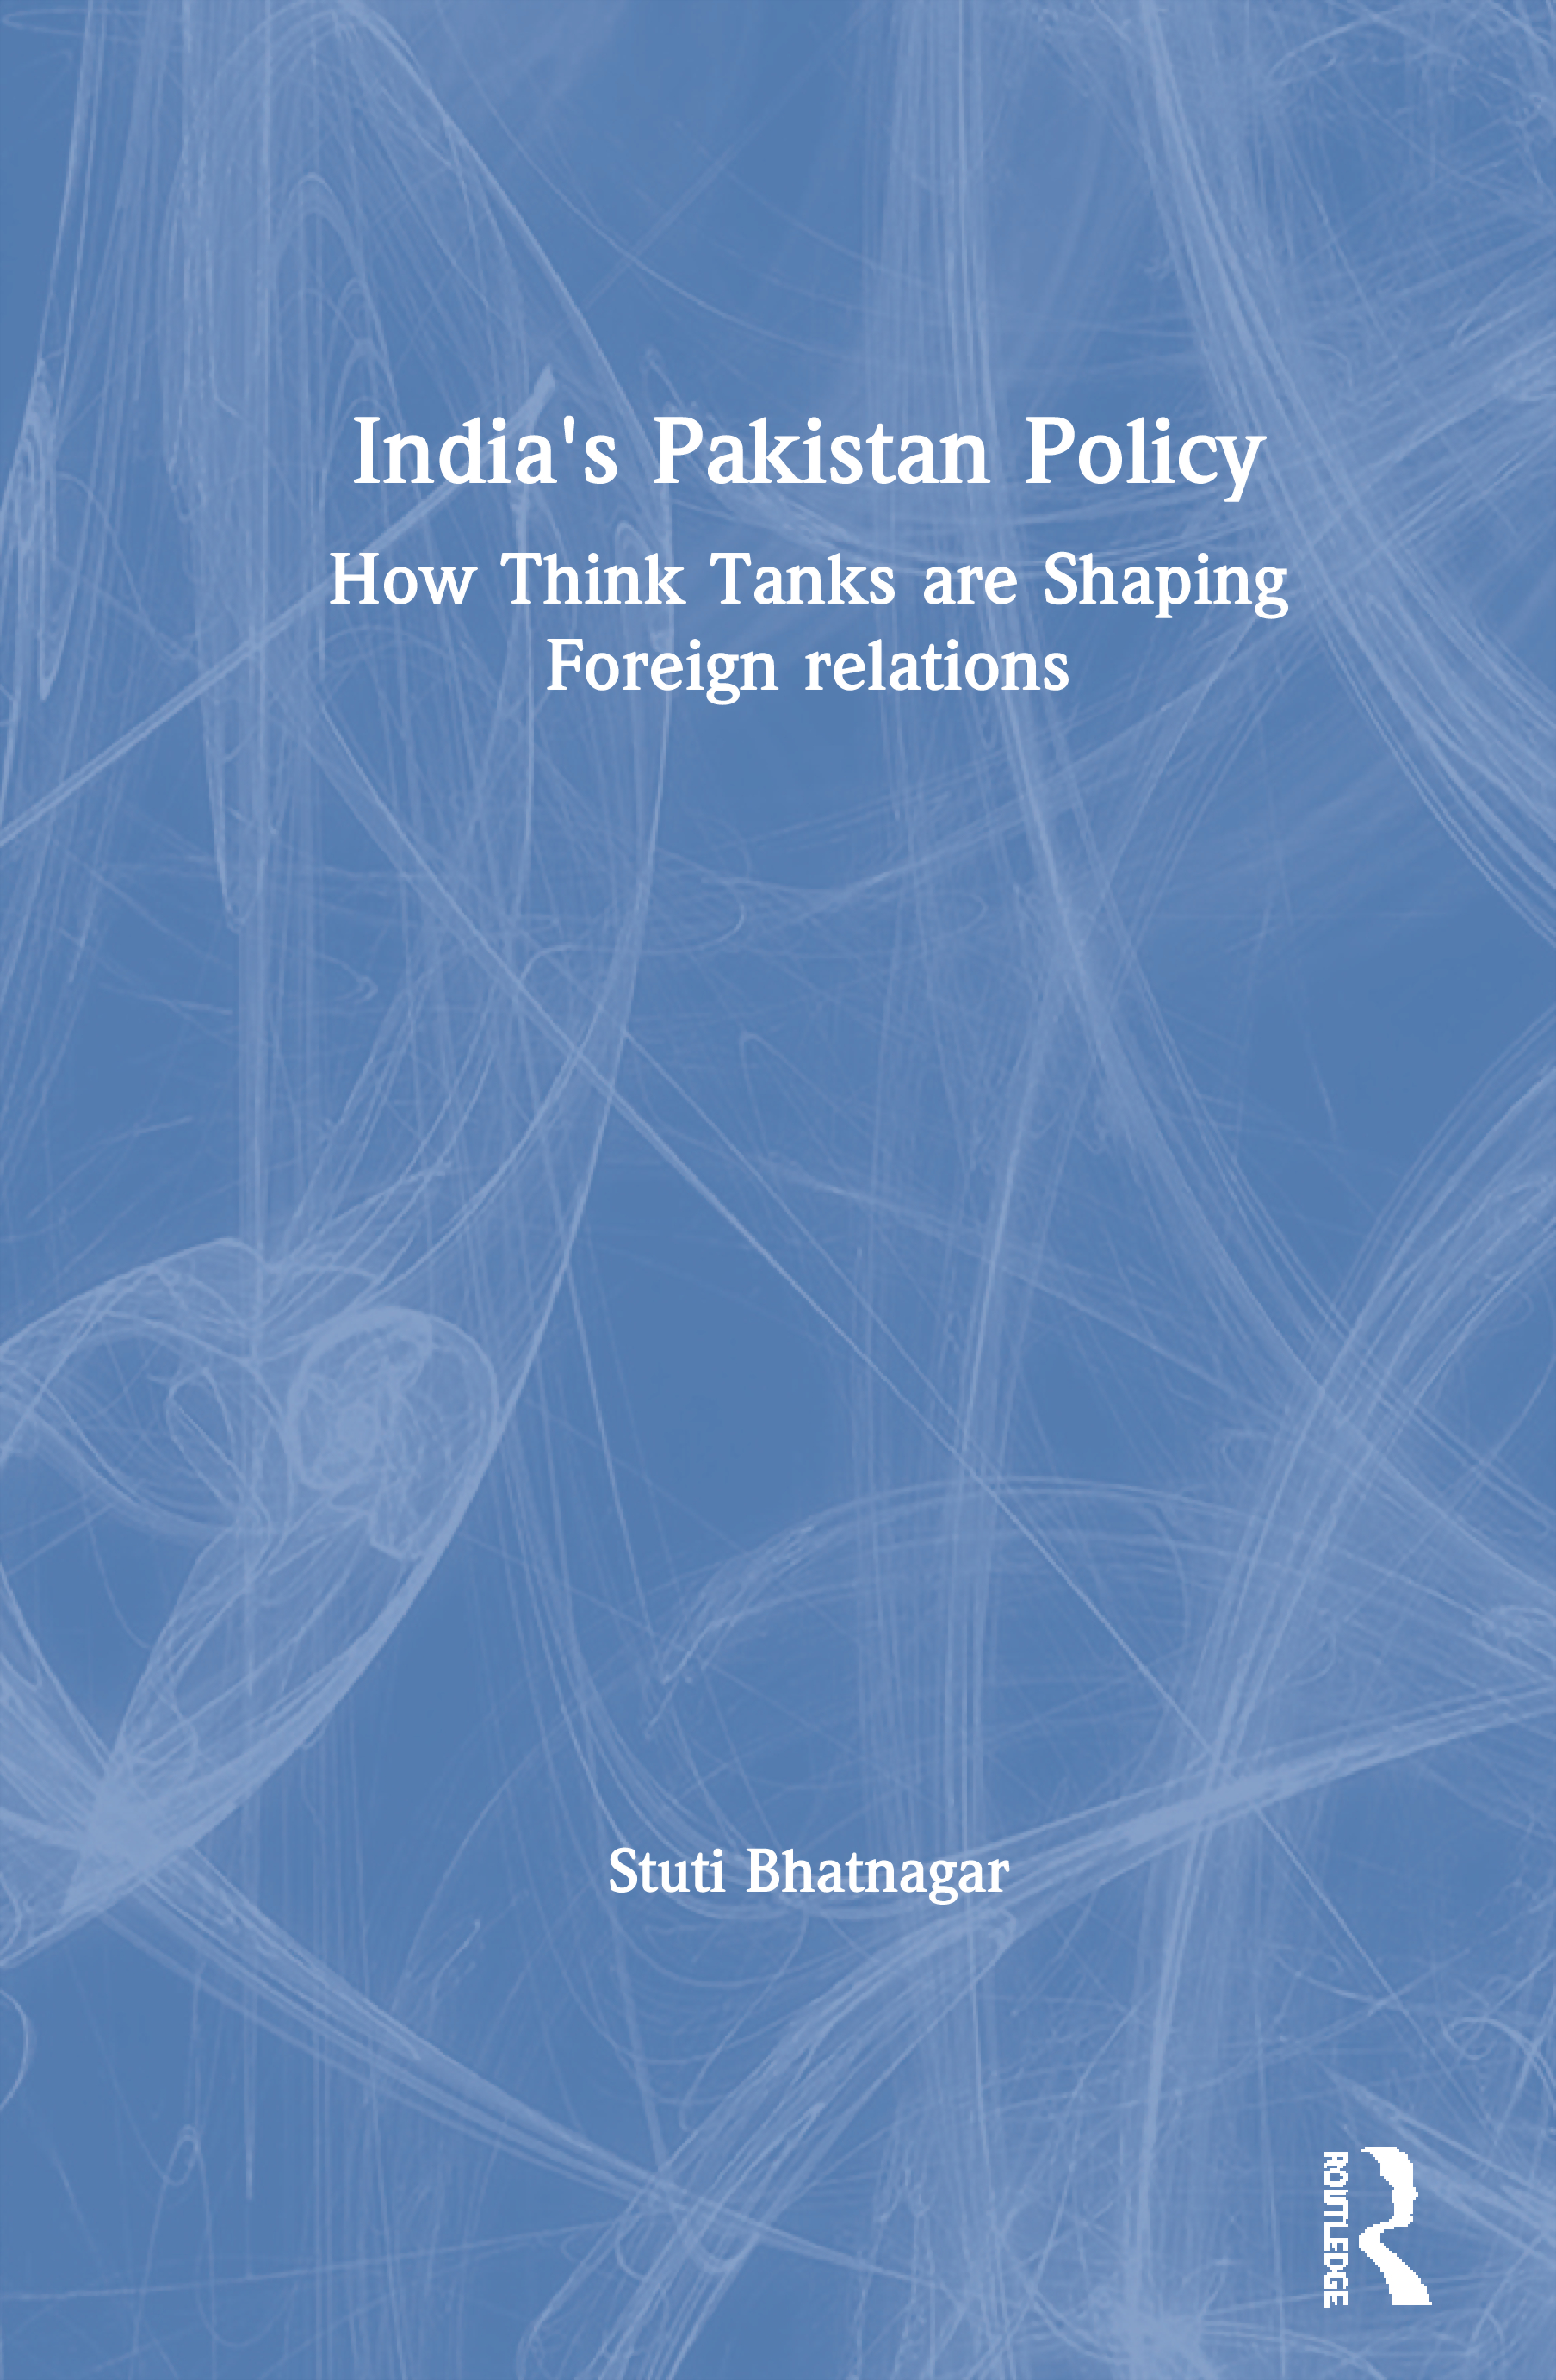 India's Pakistan Policy: How Think Tanks are Shaping Foreign relations book cover